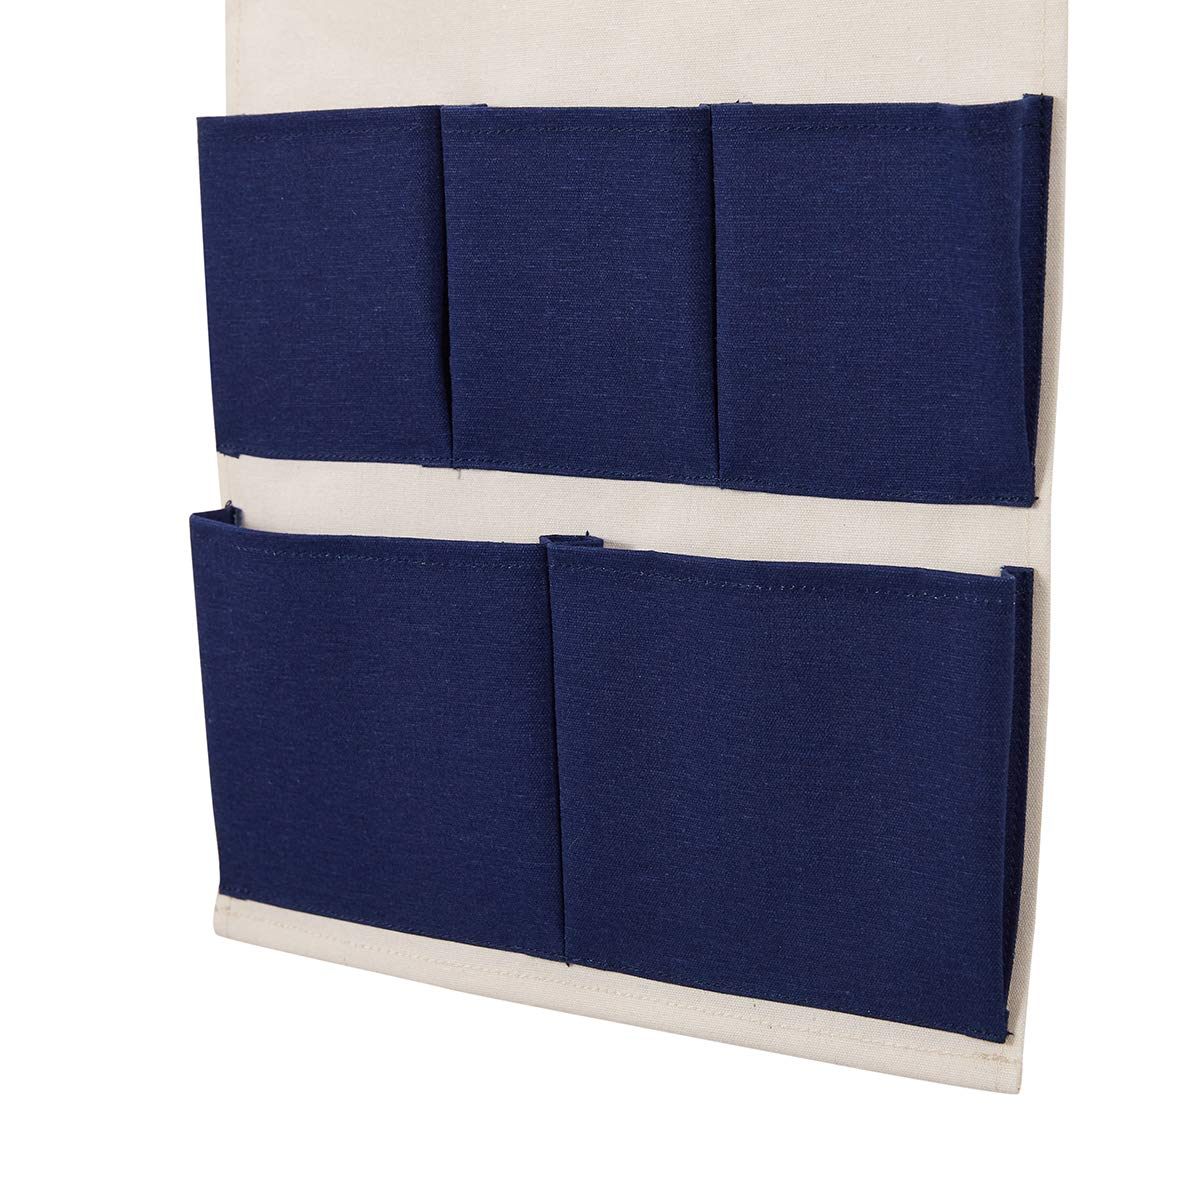 5-Pocket Every Deco Wall Door Hanging Mounted Storage Organization Compartment Pocket Fabric Wood Rope Room Bathroom Toiletry Newspaper Magazines Pastel